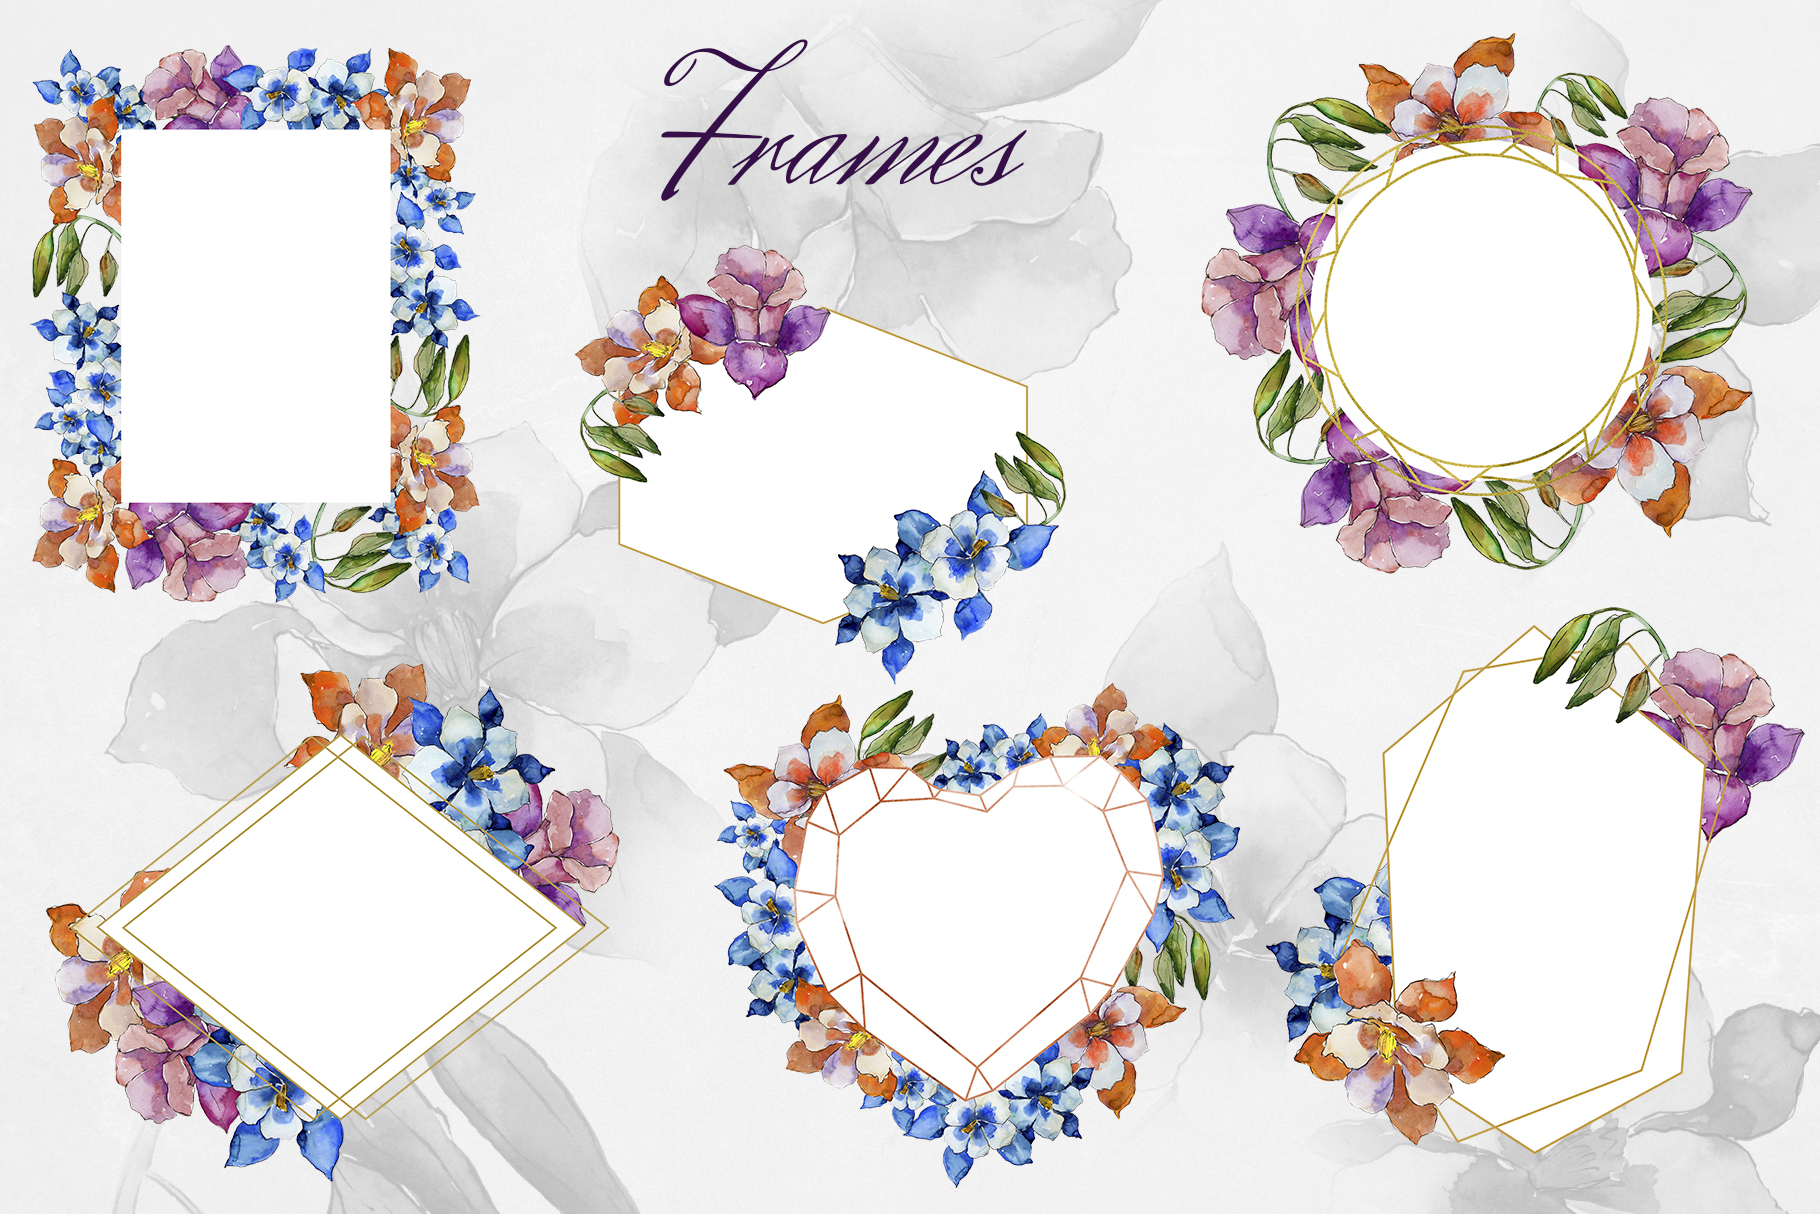 Aquilegia flowers velvet season watercolor png PNG example image 4